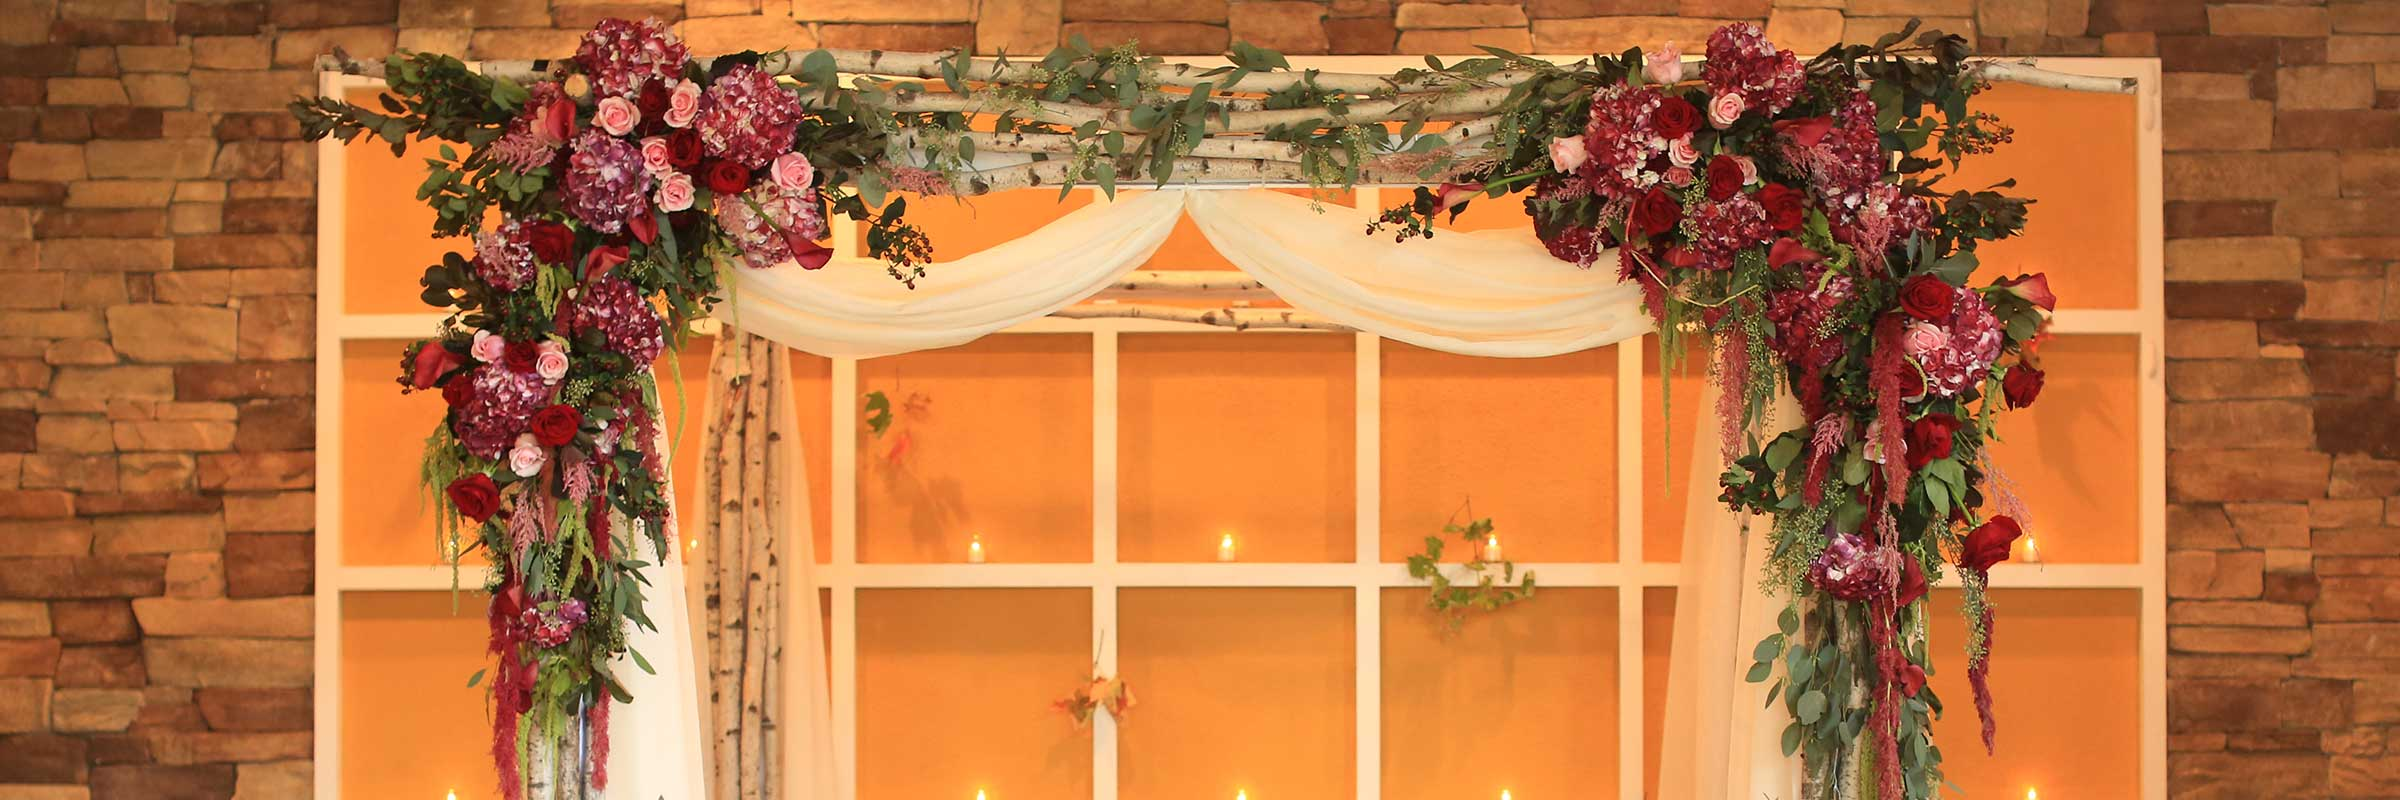 Fresh Flowers Birch Chuppah Wedding Arch